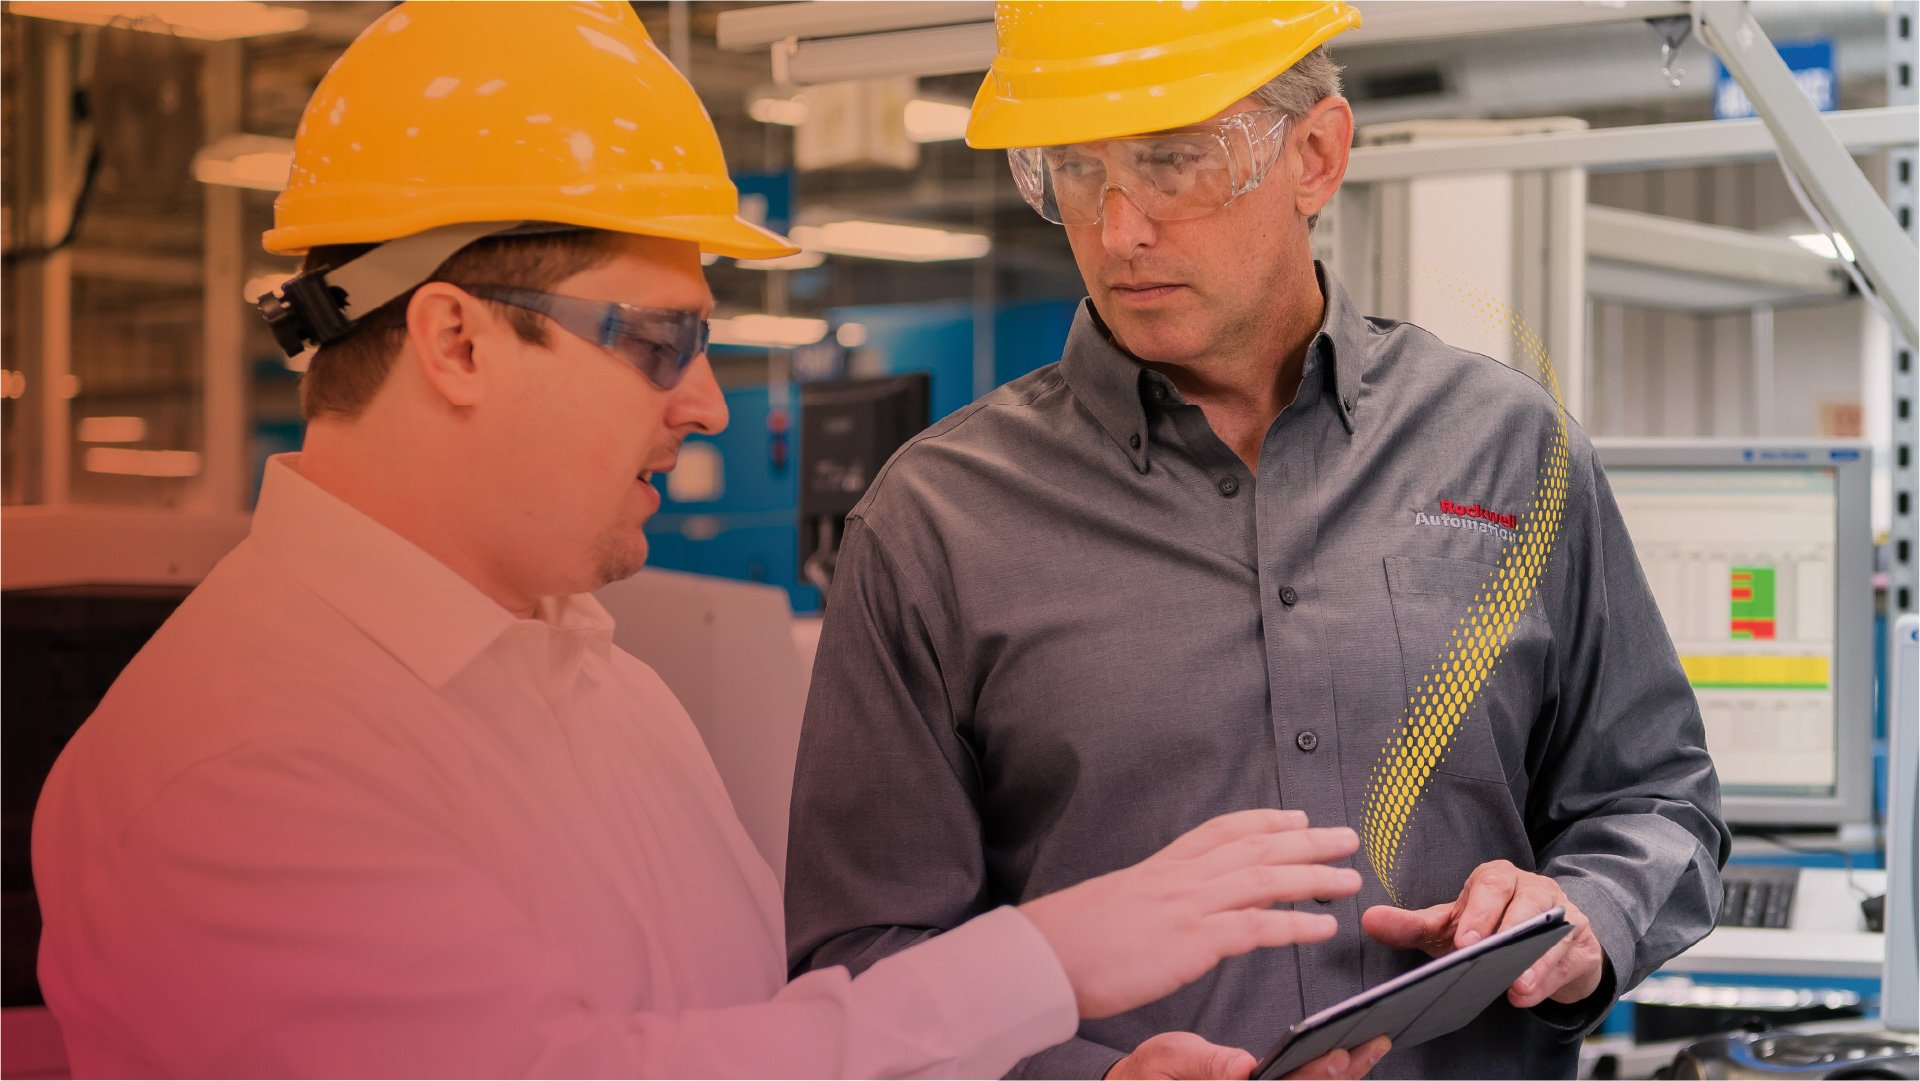 Safety solutions webinar playlist features the top safety solution sessions from Automation Fair® At Home